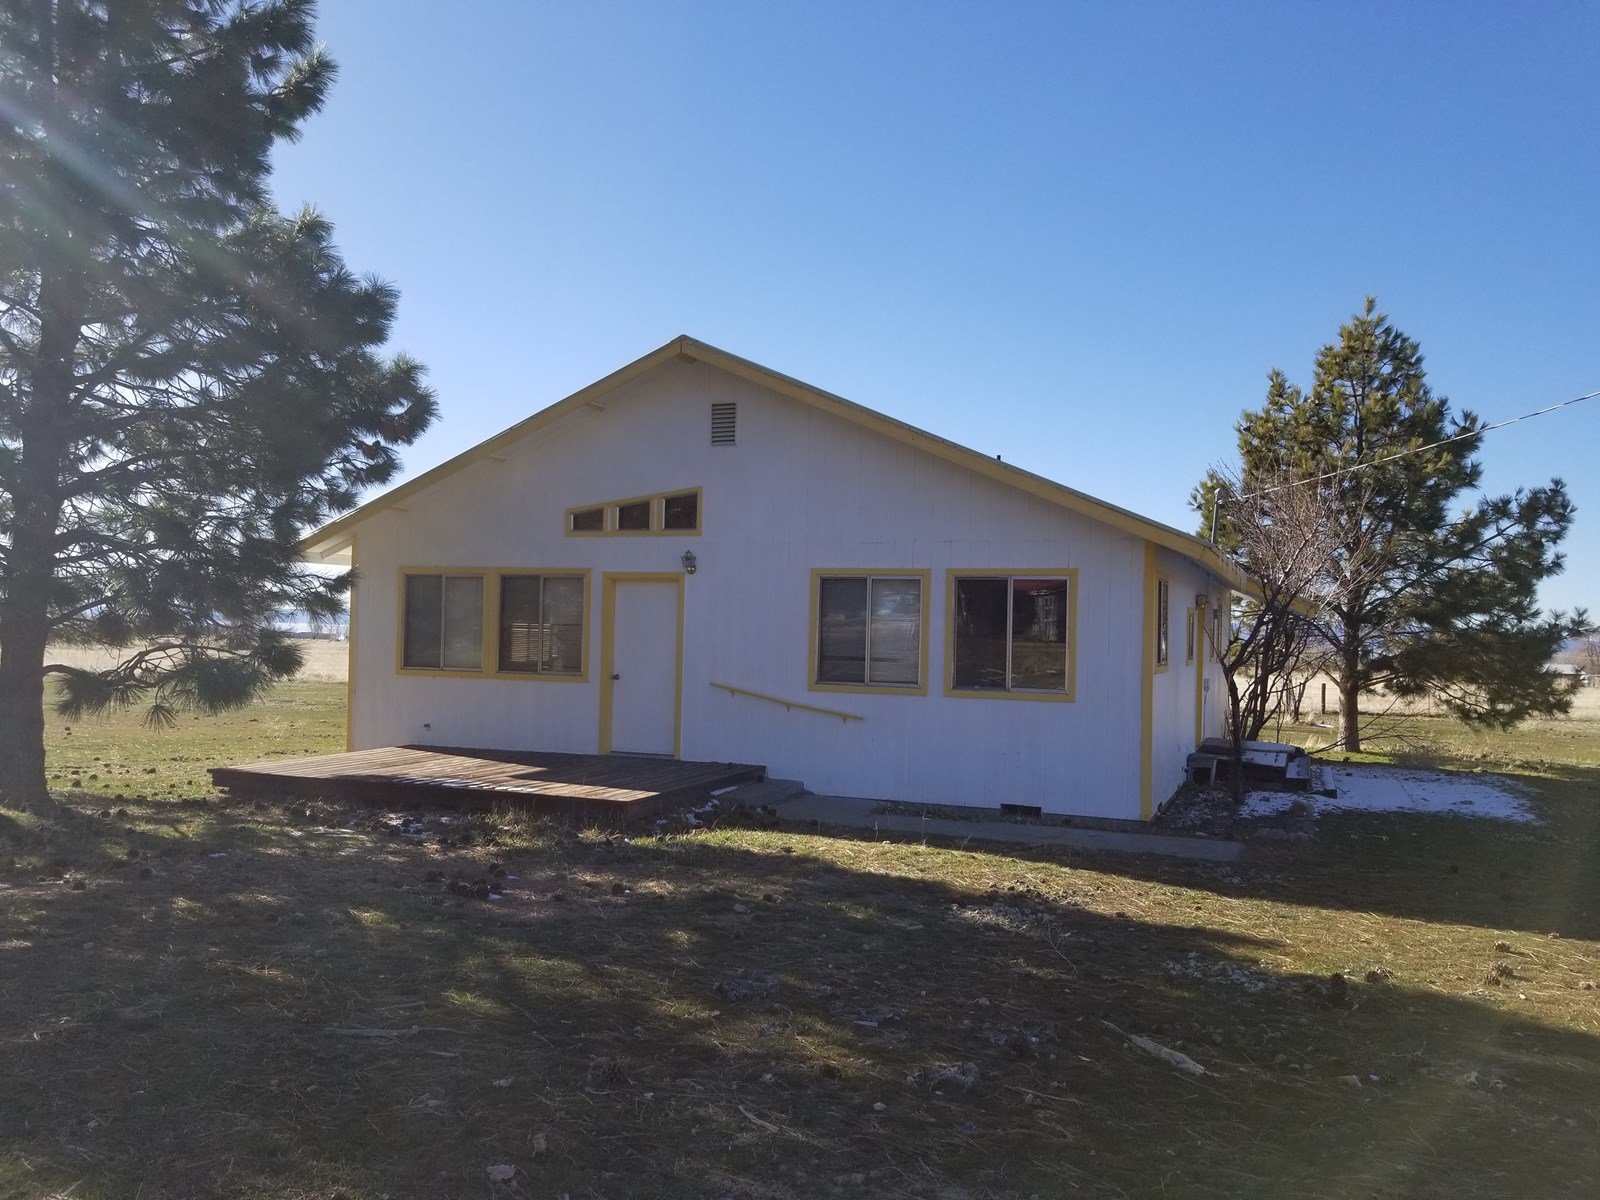 2Bdr/1.5Bth, 1,280Sq Ft Country Home w/Garage/1.84 Acres